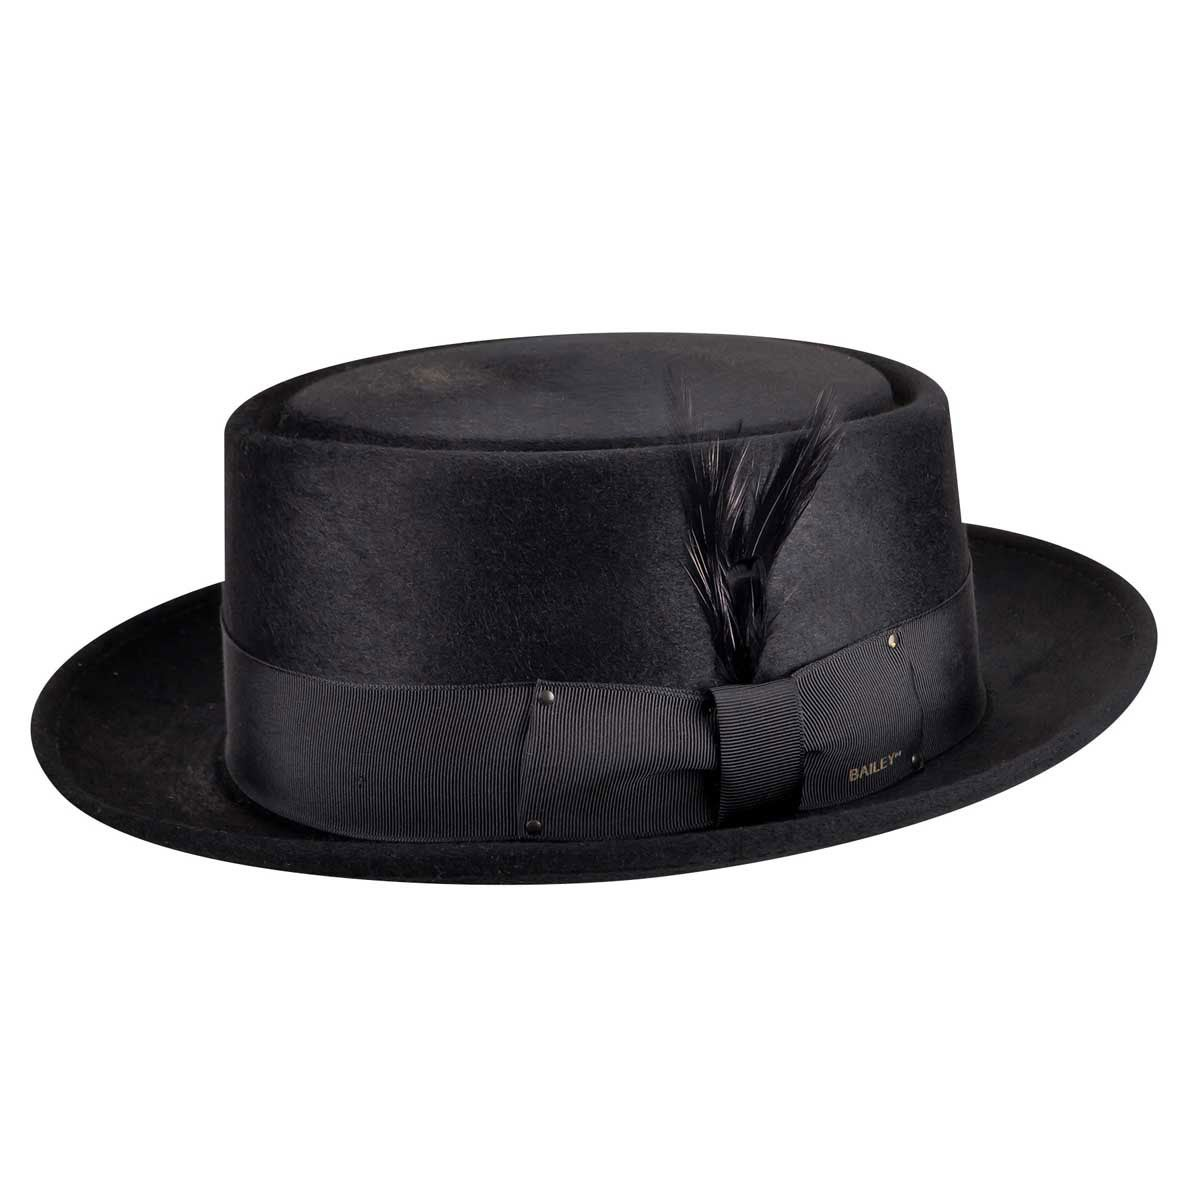 1940s Mens Hats | Fedora, Homburg, Porkpie Hats Jett Pork Pie Hat $100.00 AT vintagedancer.com